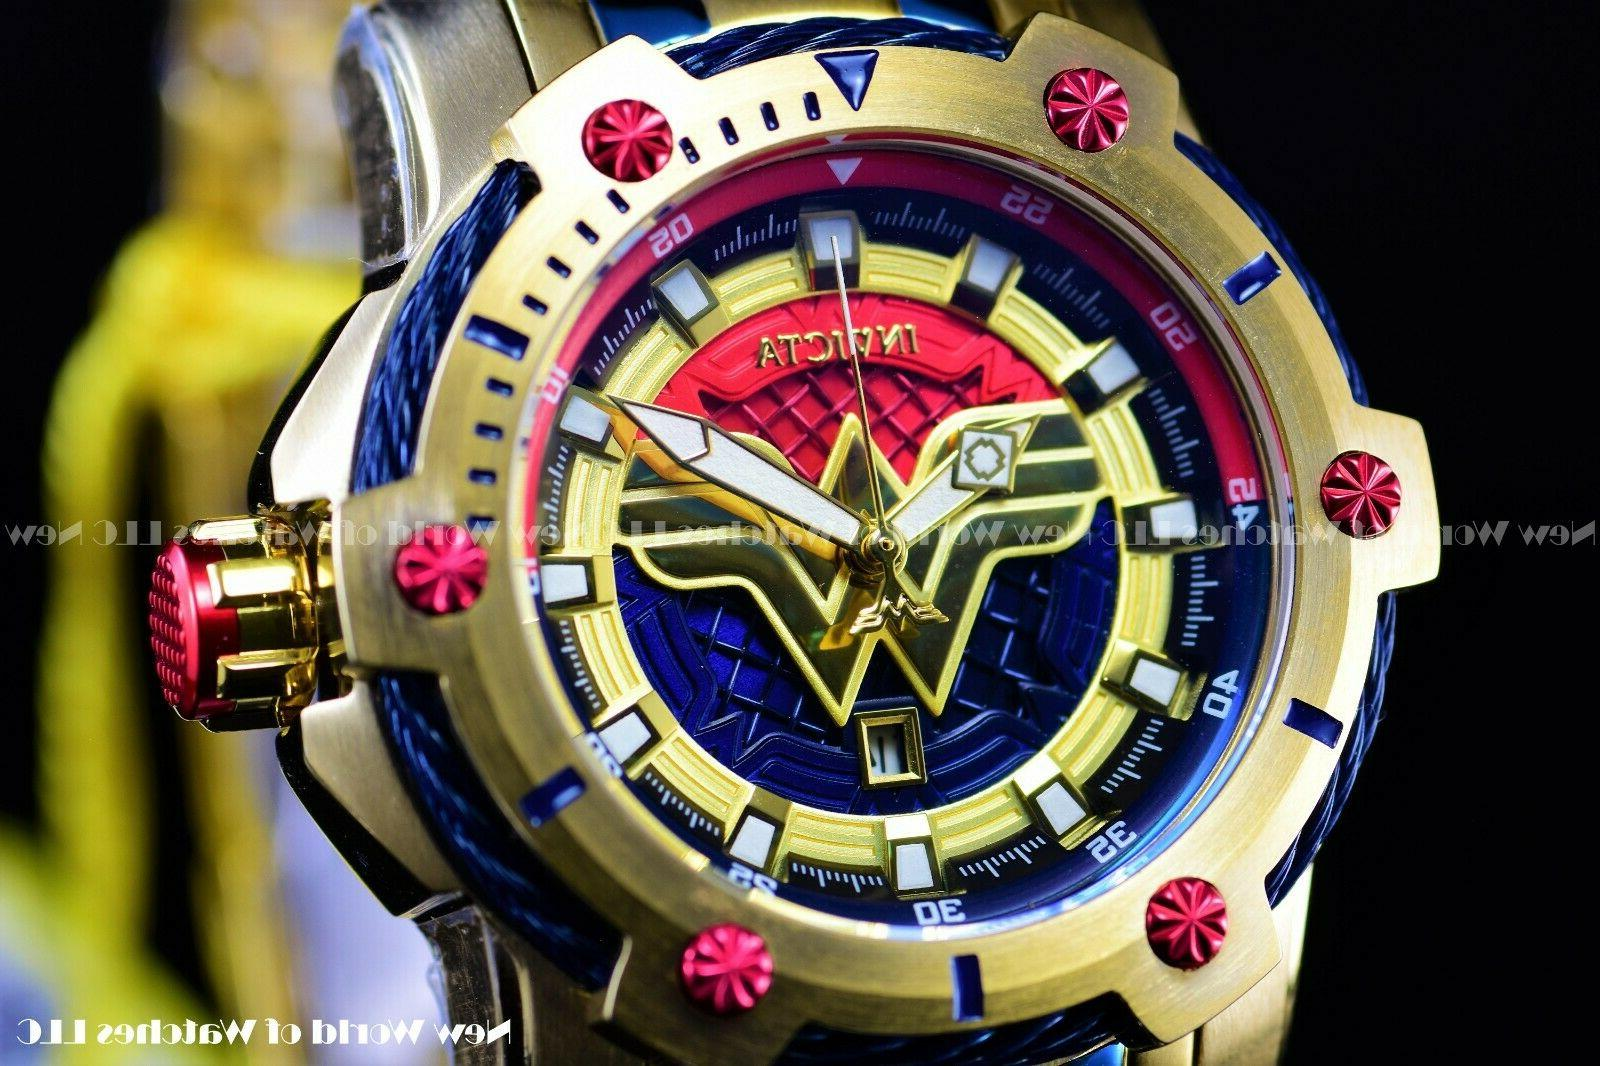 Invicta Limited Edition DC Bolt 18k Plated Watch